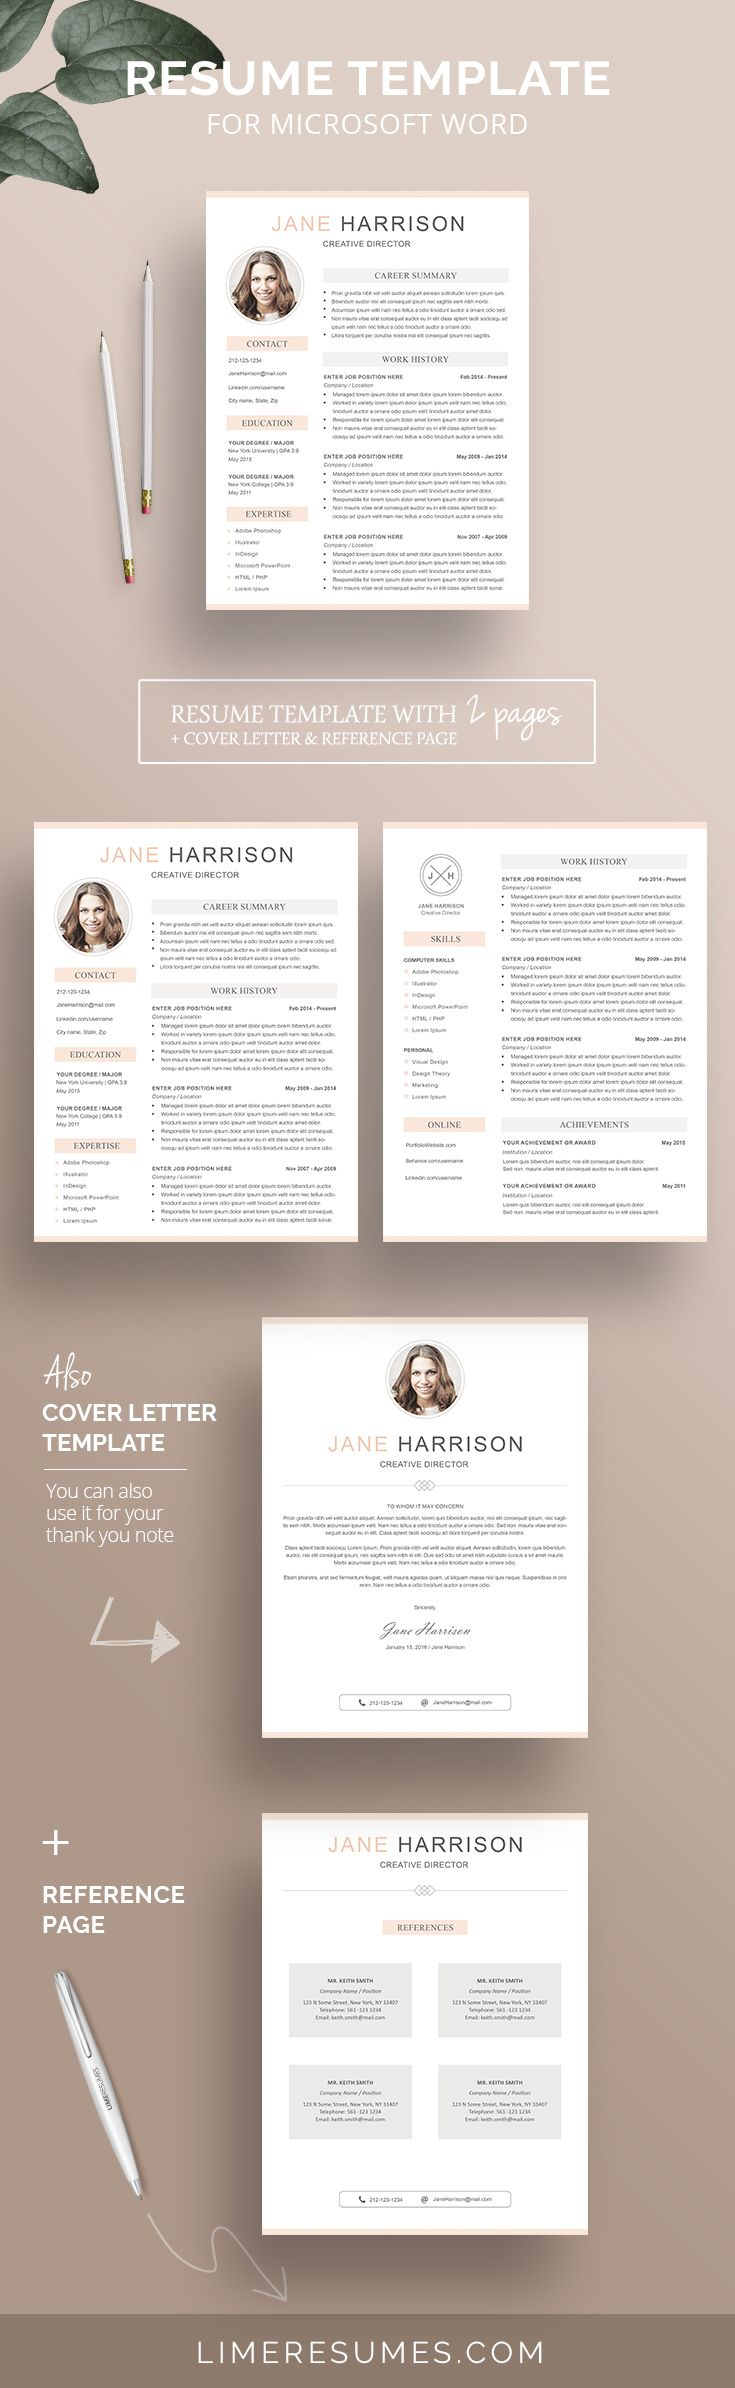 Modern resume template with photo. Easy to edit with Word. Comes with matching cover letter and reference page. 1 & 2 page resume. Instant download.